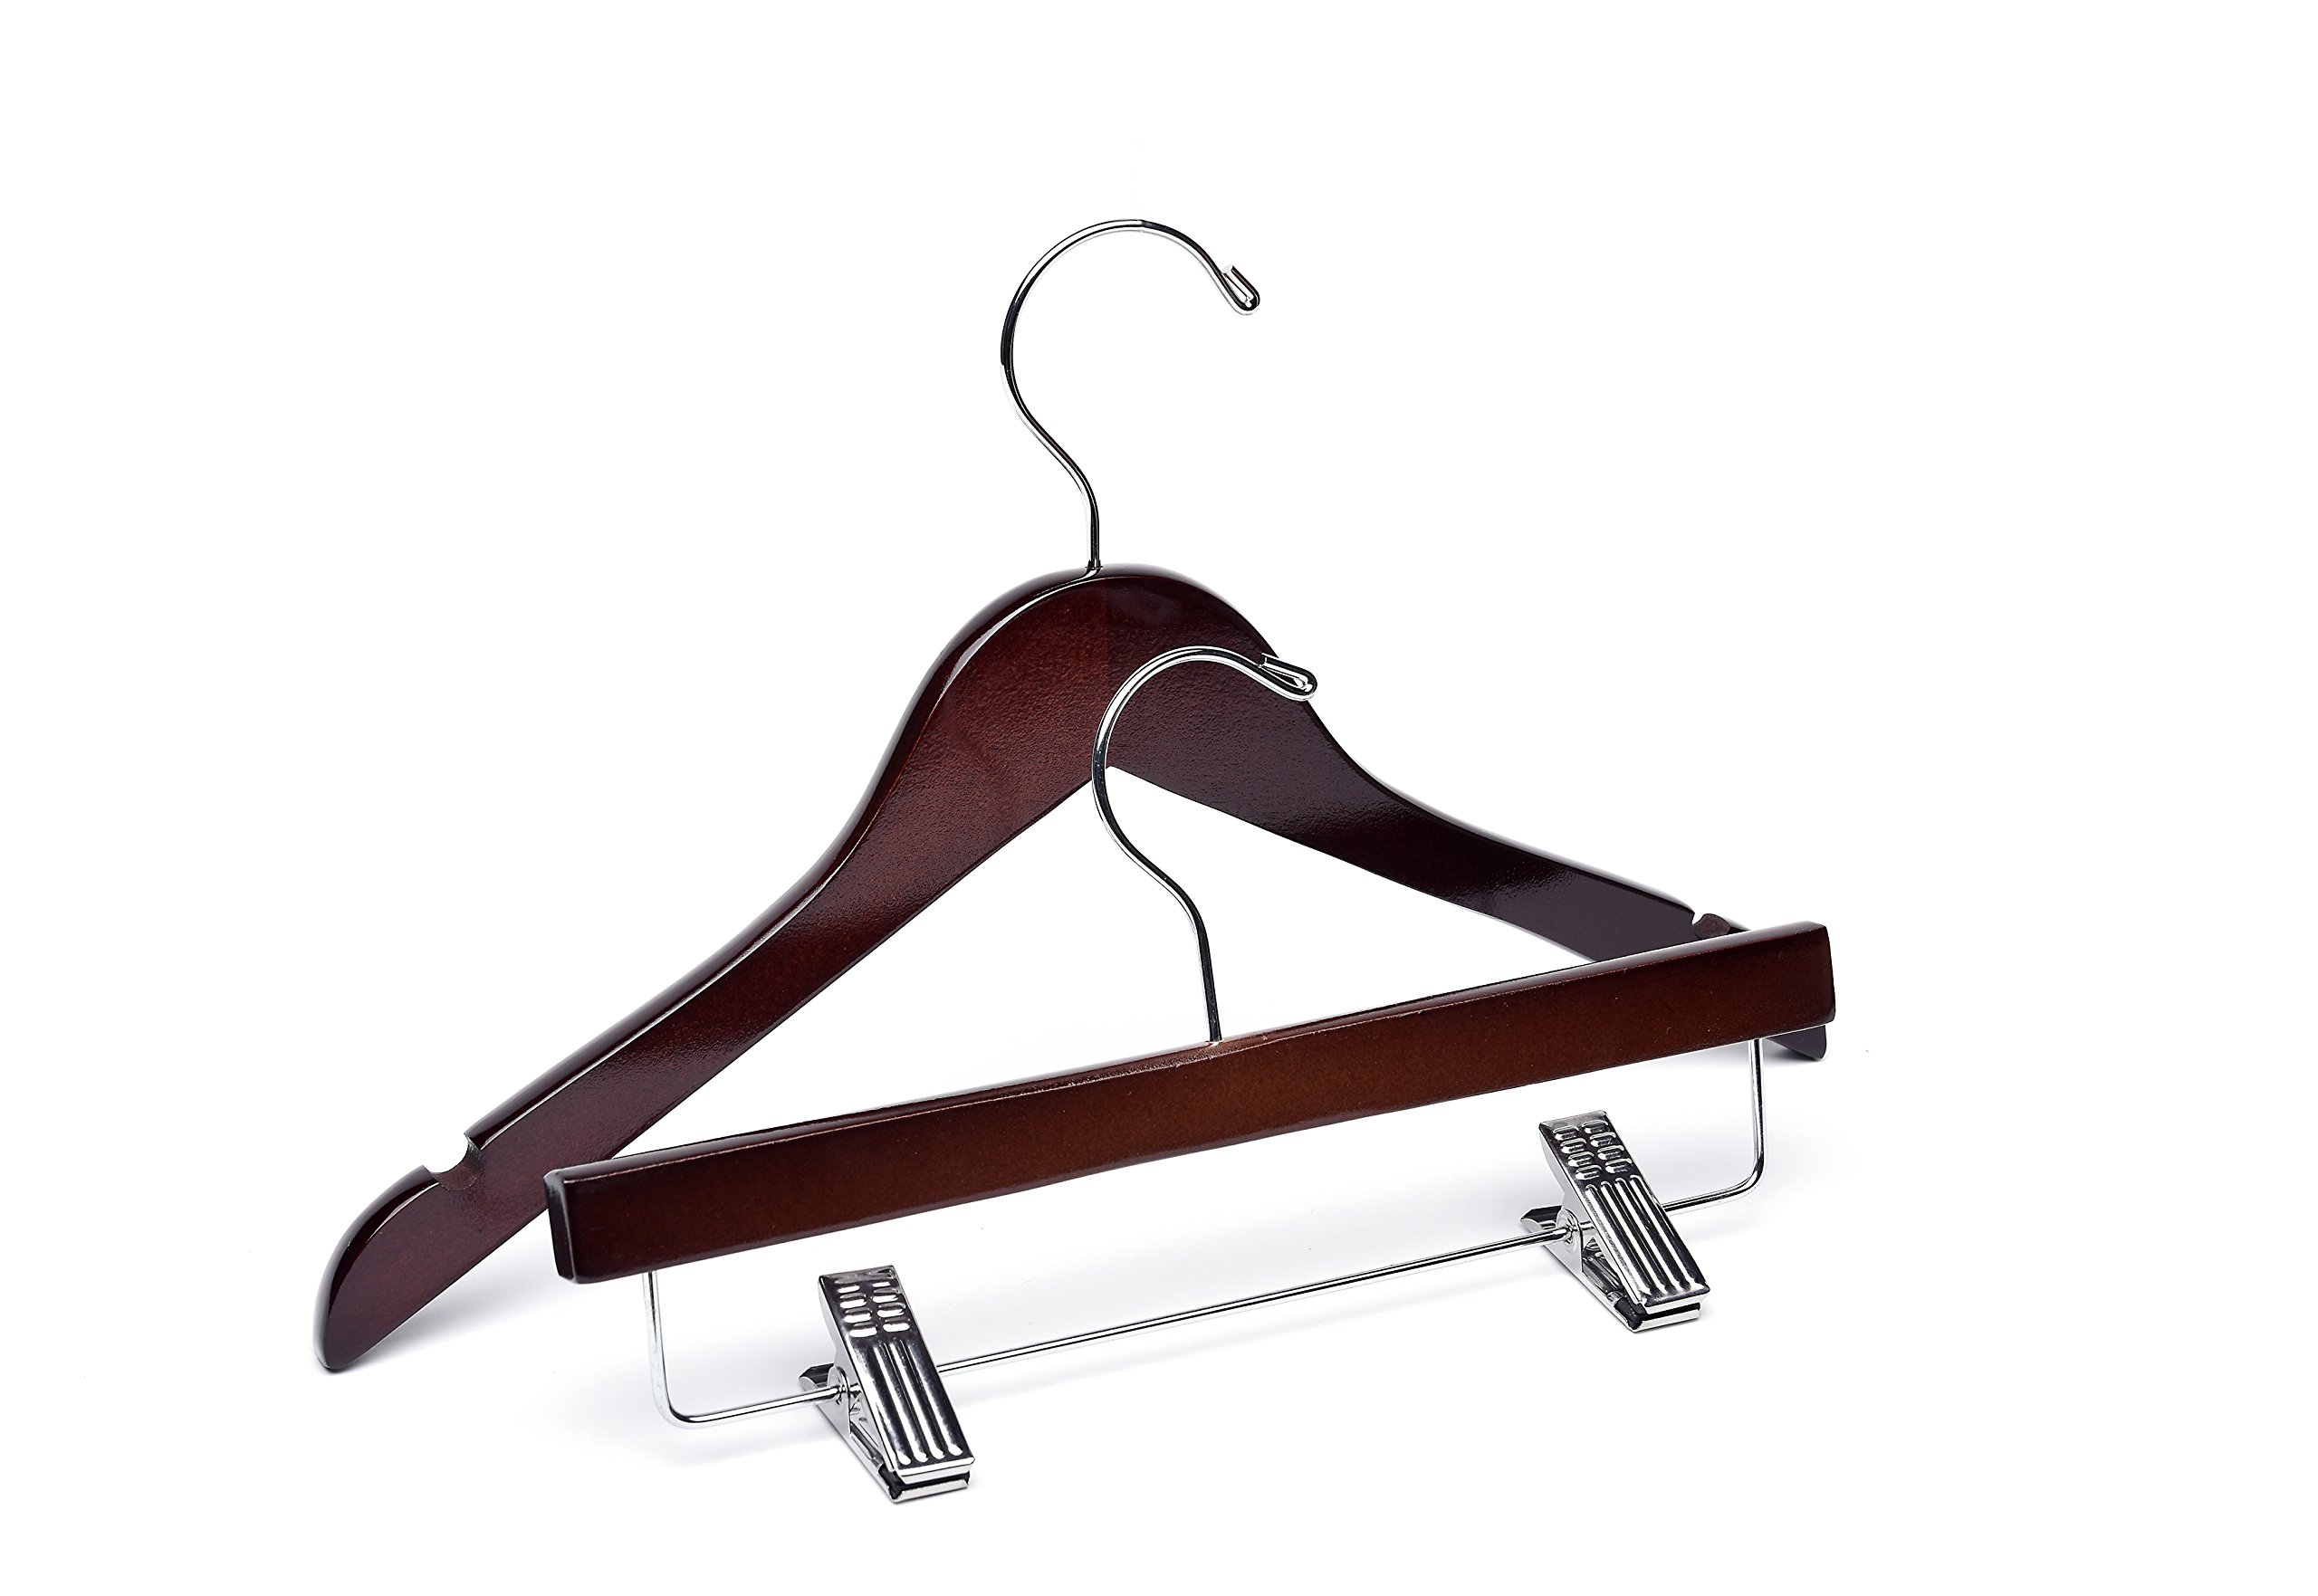 Baby Dark Walnut Wooden Hangers, Mix 60 Top 25 Bottom